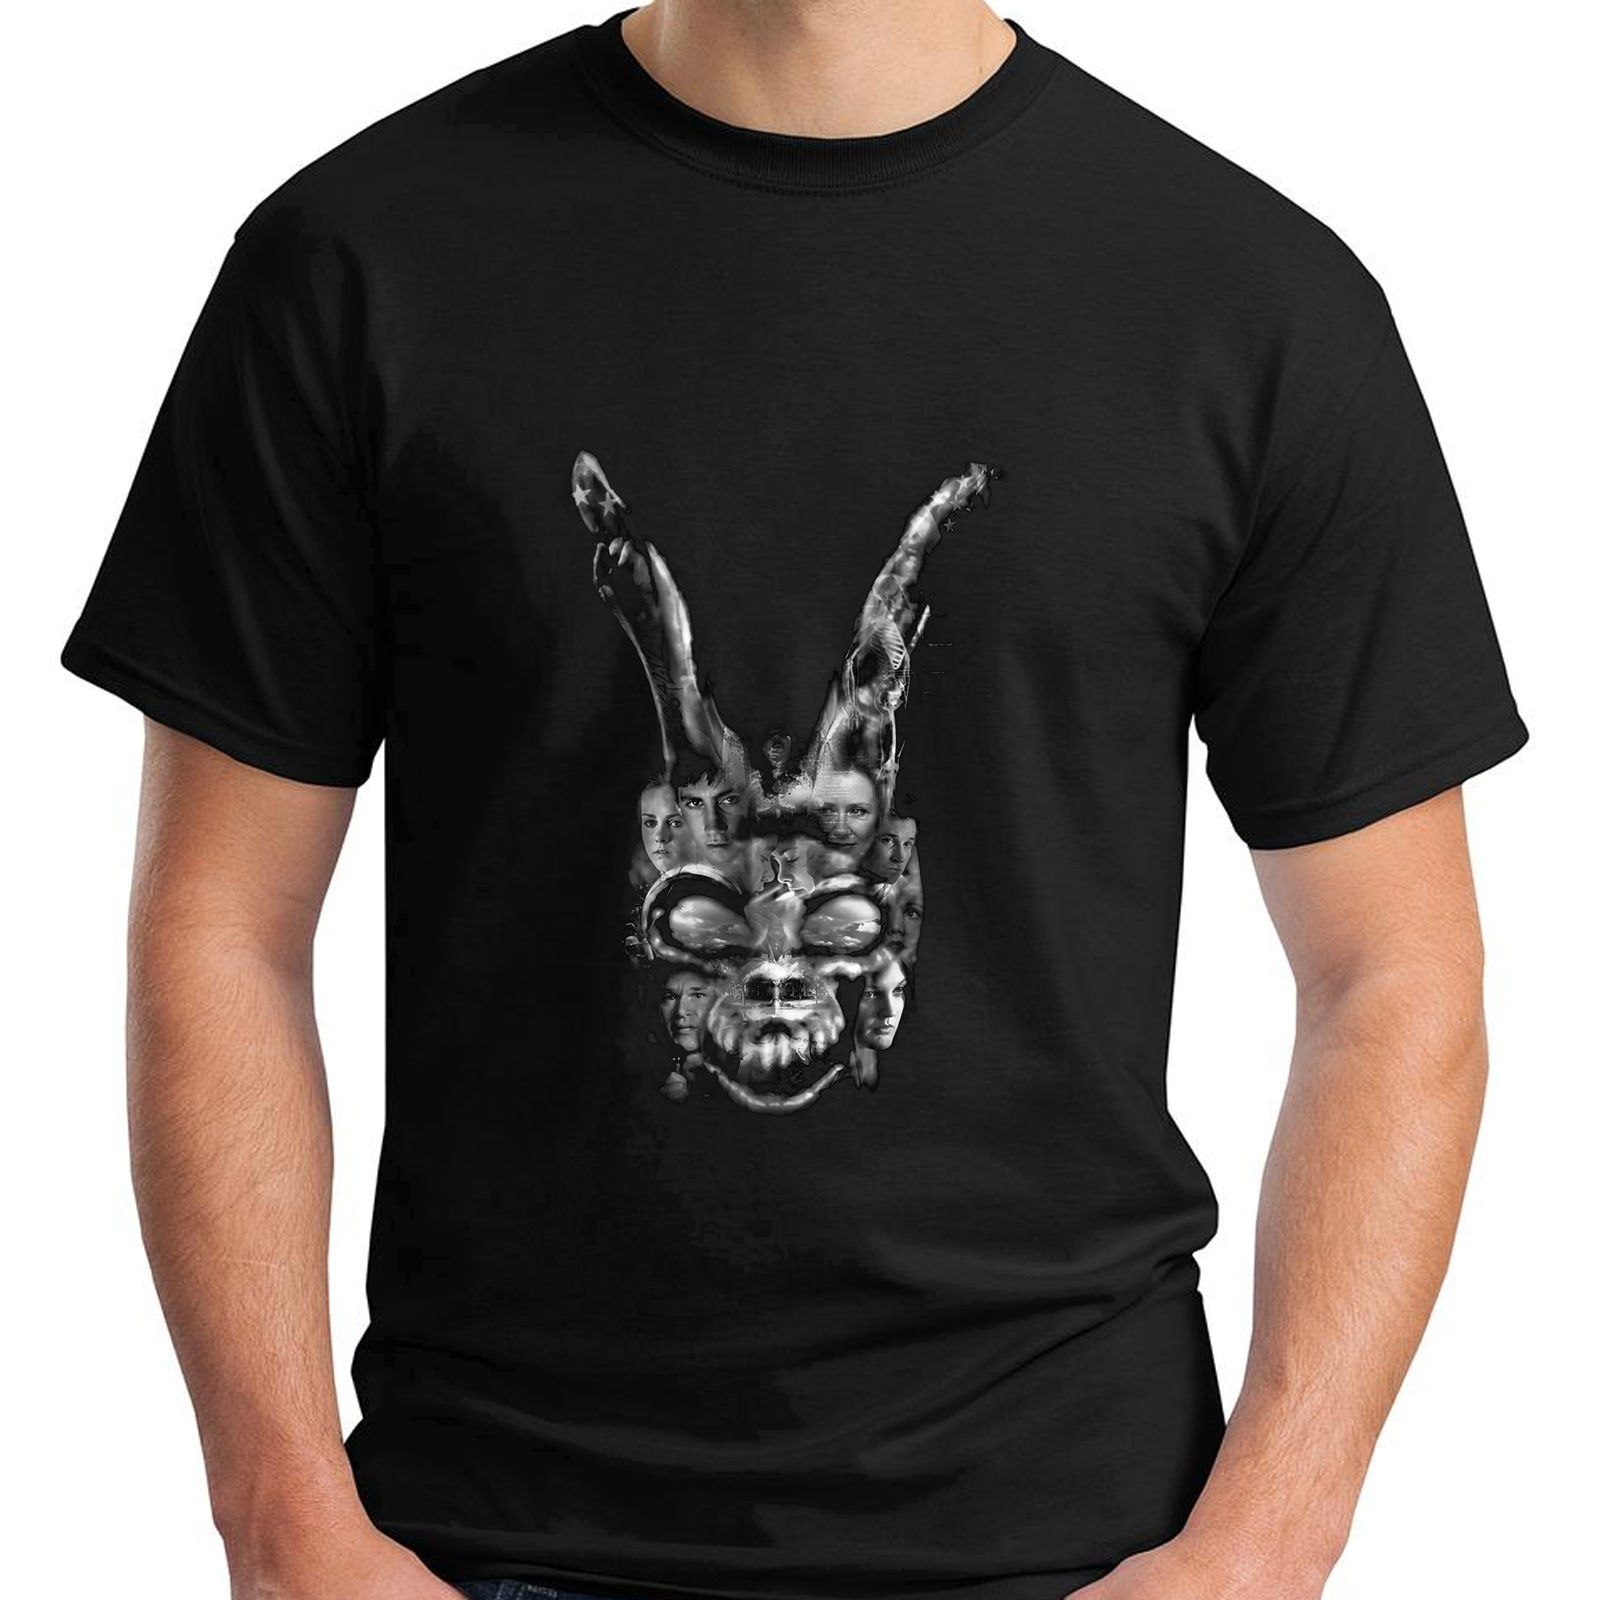 New Donnie Darko Bunny Talk To Frank Rabbit Cult Movie Black T-Shirt Size S-3XL New Fashion T Shirts Graphic Letter image